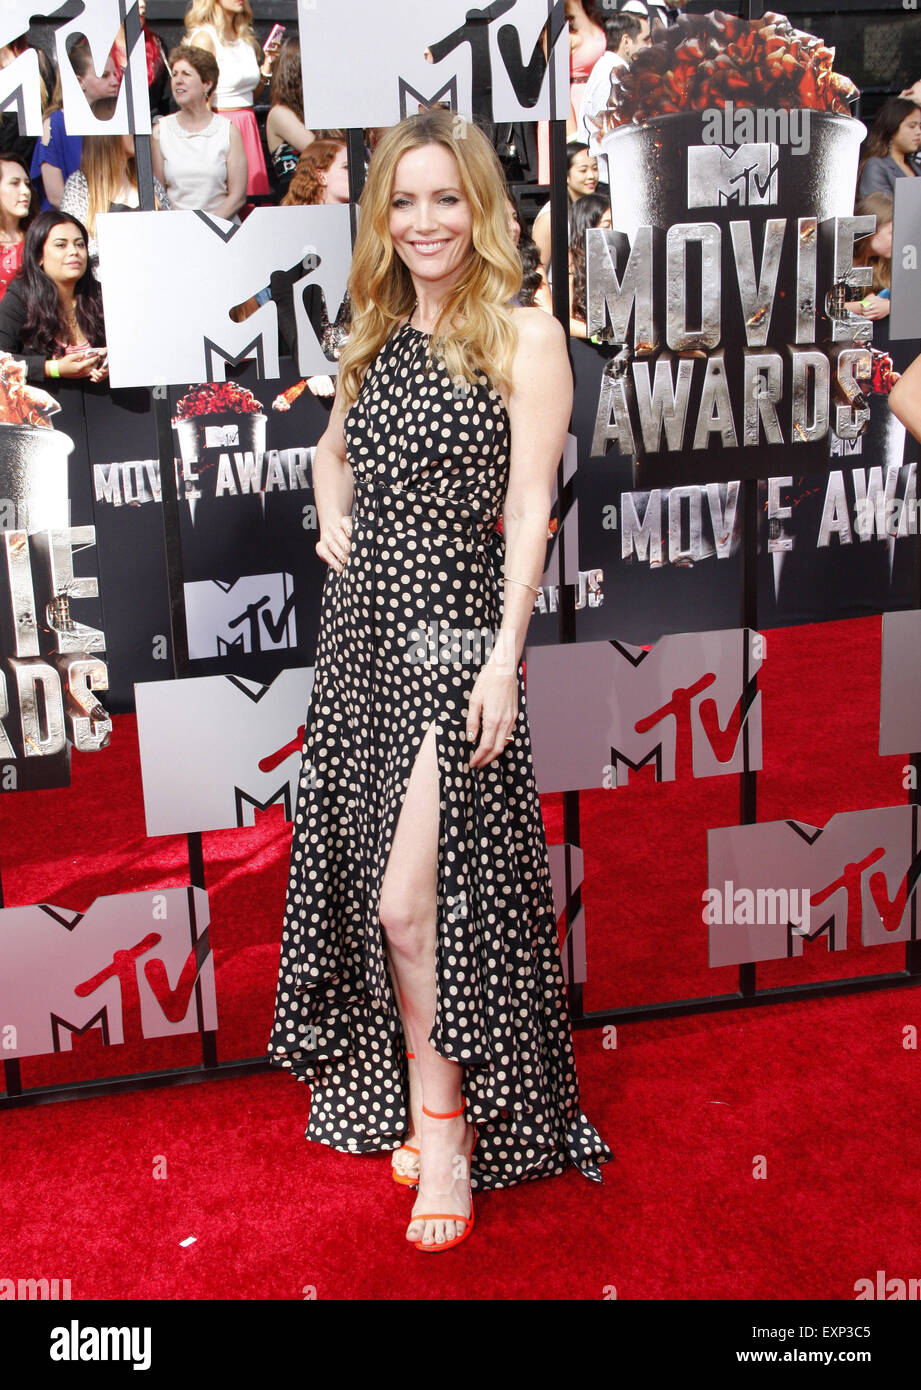 Leslie Mann at the 2014 MTV Movie Awards held at the Nokia Theatre L.A. Live in Los Angeles on April 13, 2014 in - Stock Image